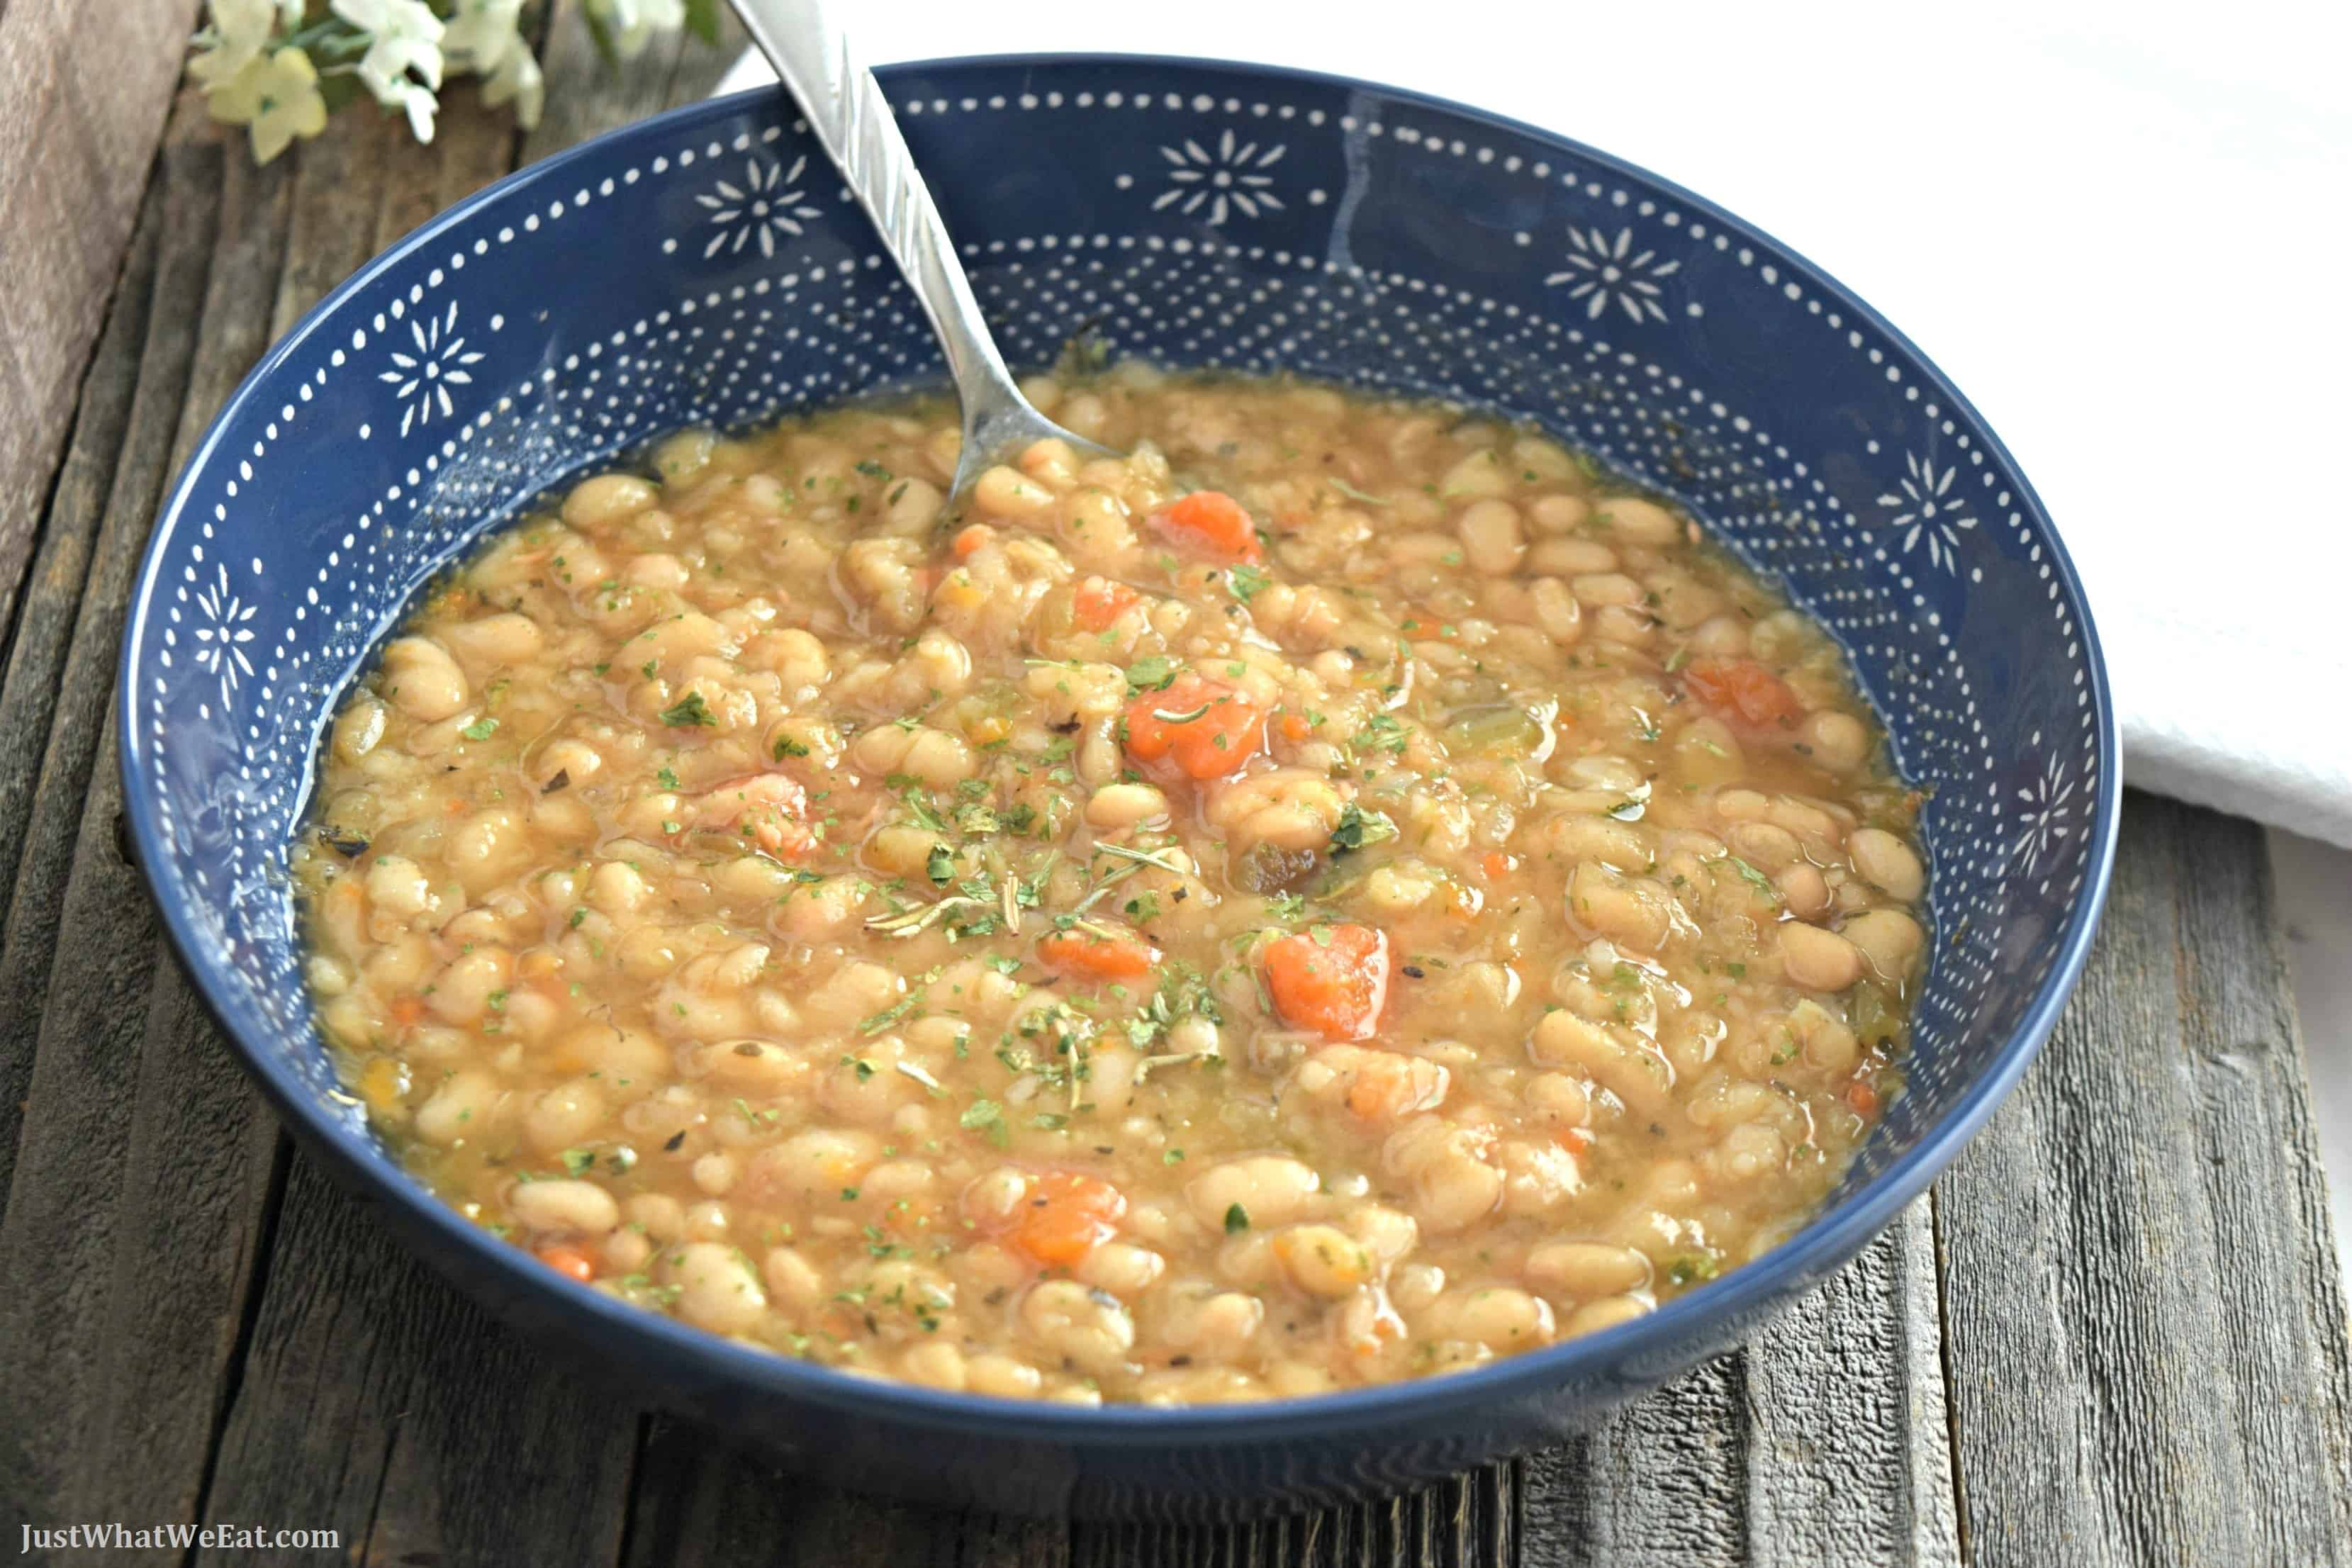 Slow Cooker White Bean Soup - Gluten Free & Vegan